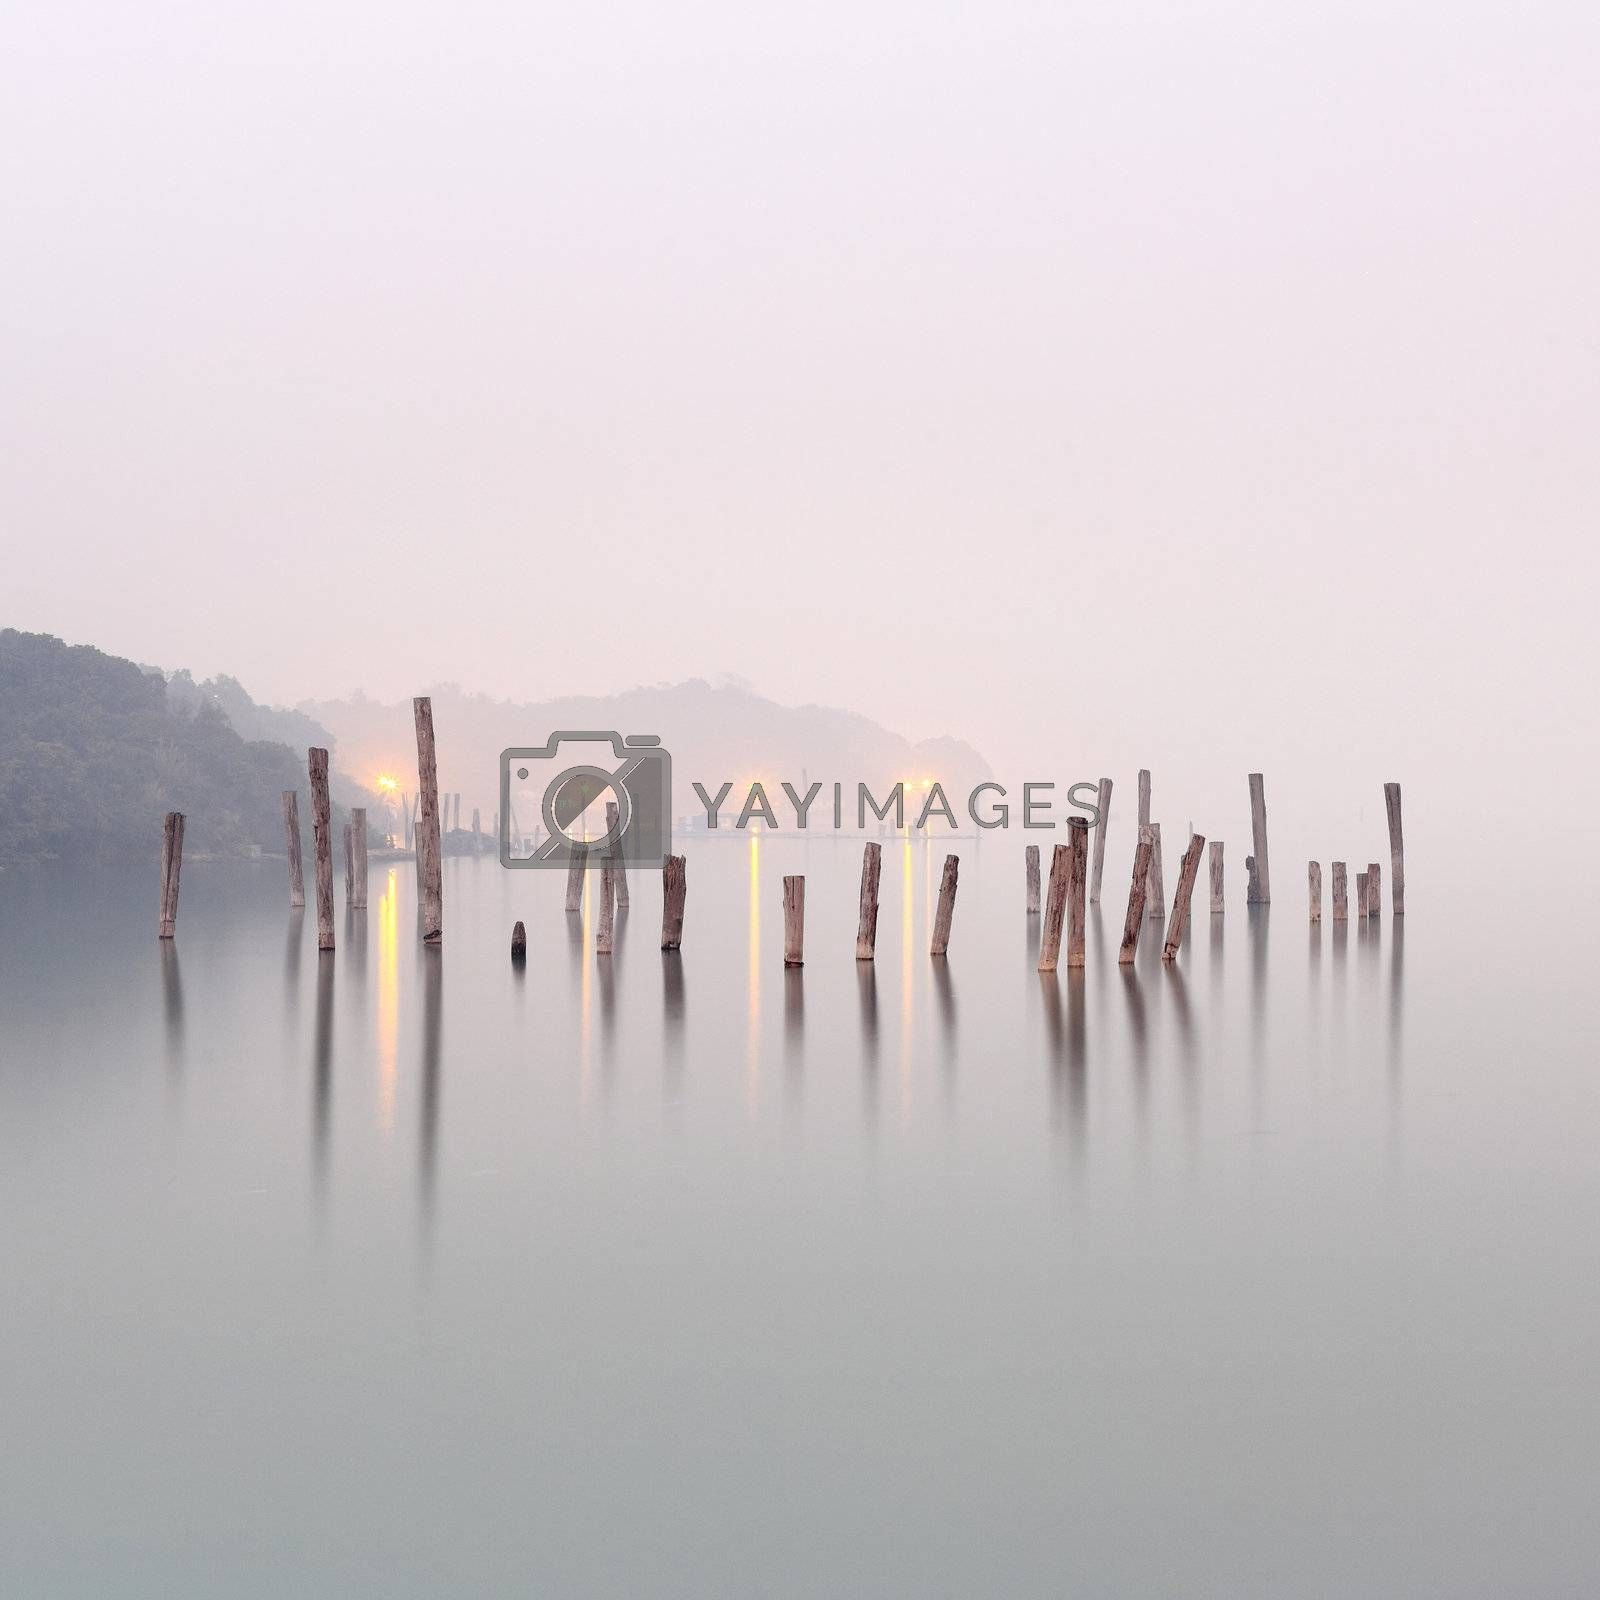 Royalty free image of wood in water by leungchopan